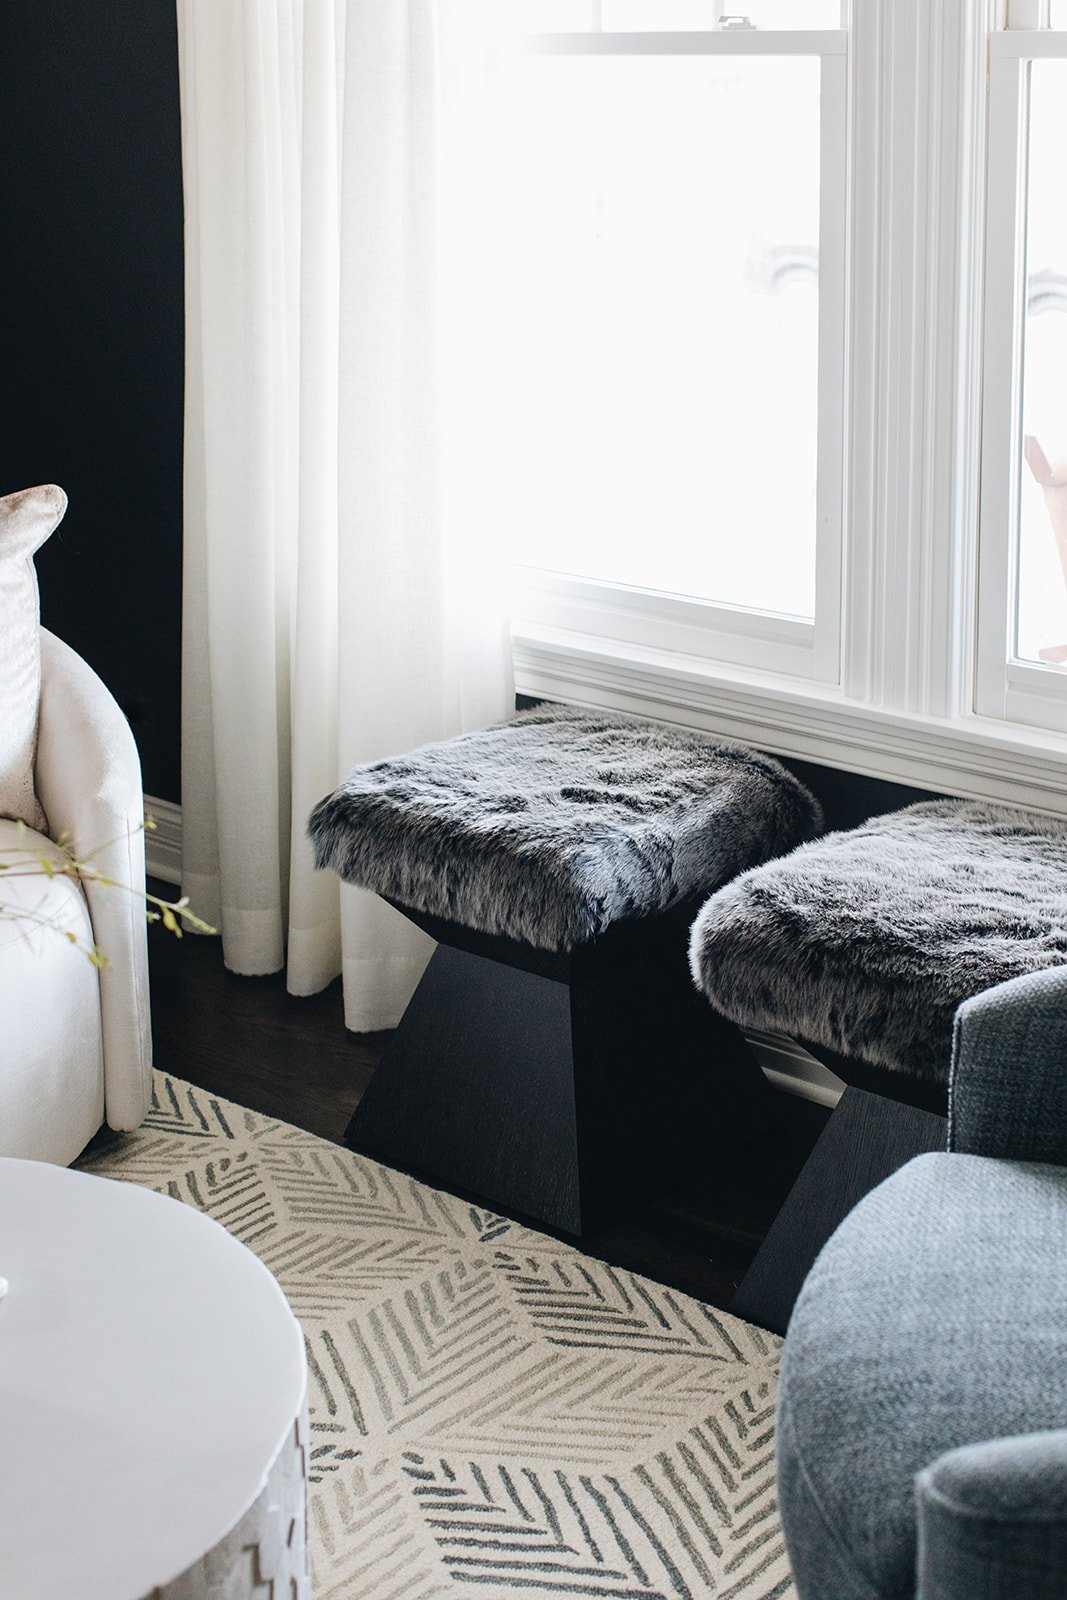 fuzzy living room ottomans by window